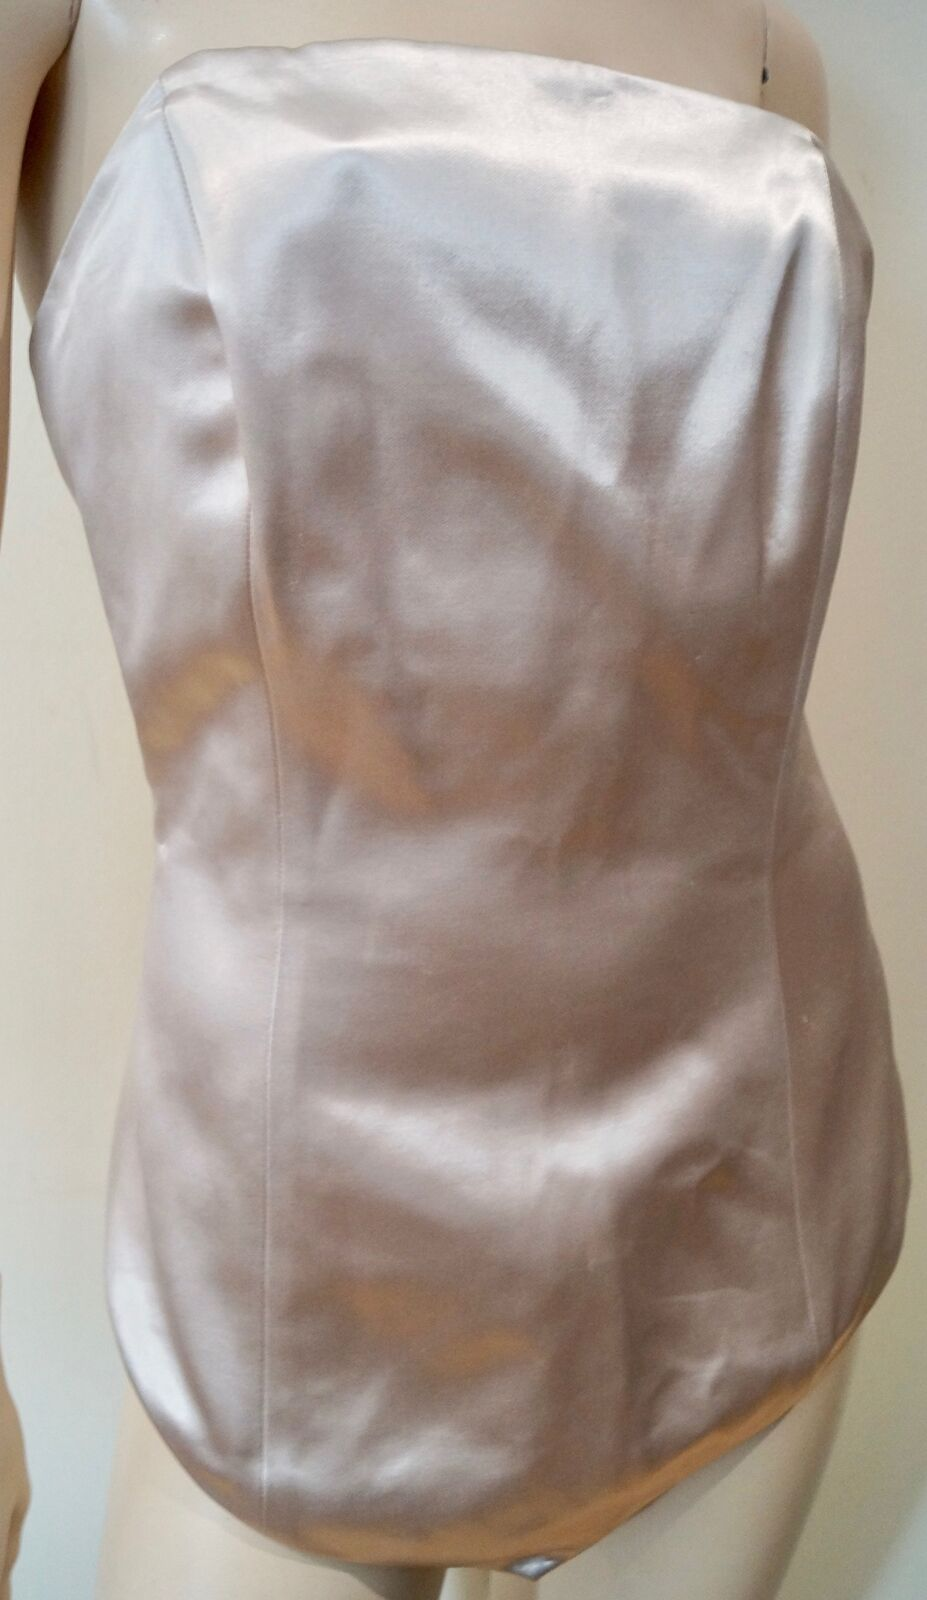 MAISON MARTIN MARGIELA Pale Gold Cream Sheen Evening Corset Top 42 UK10 BNWT